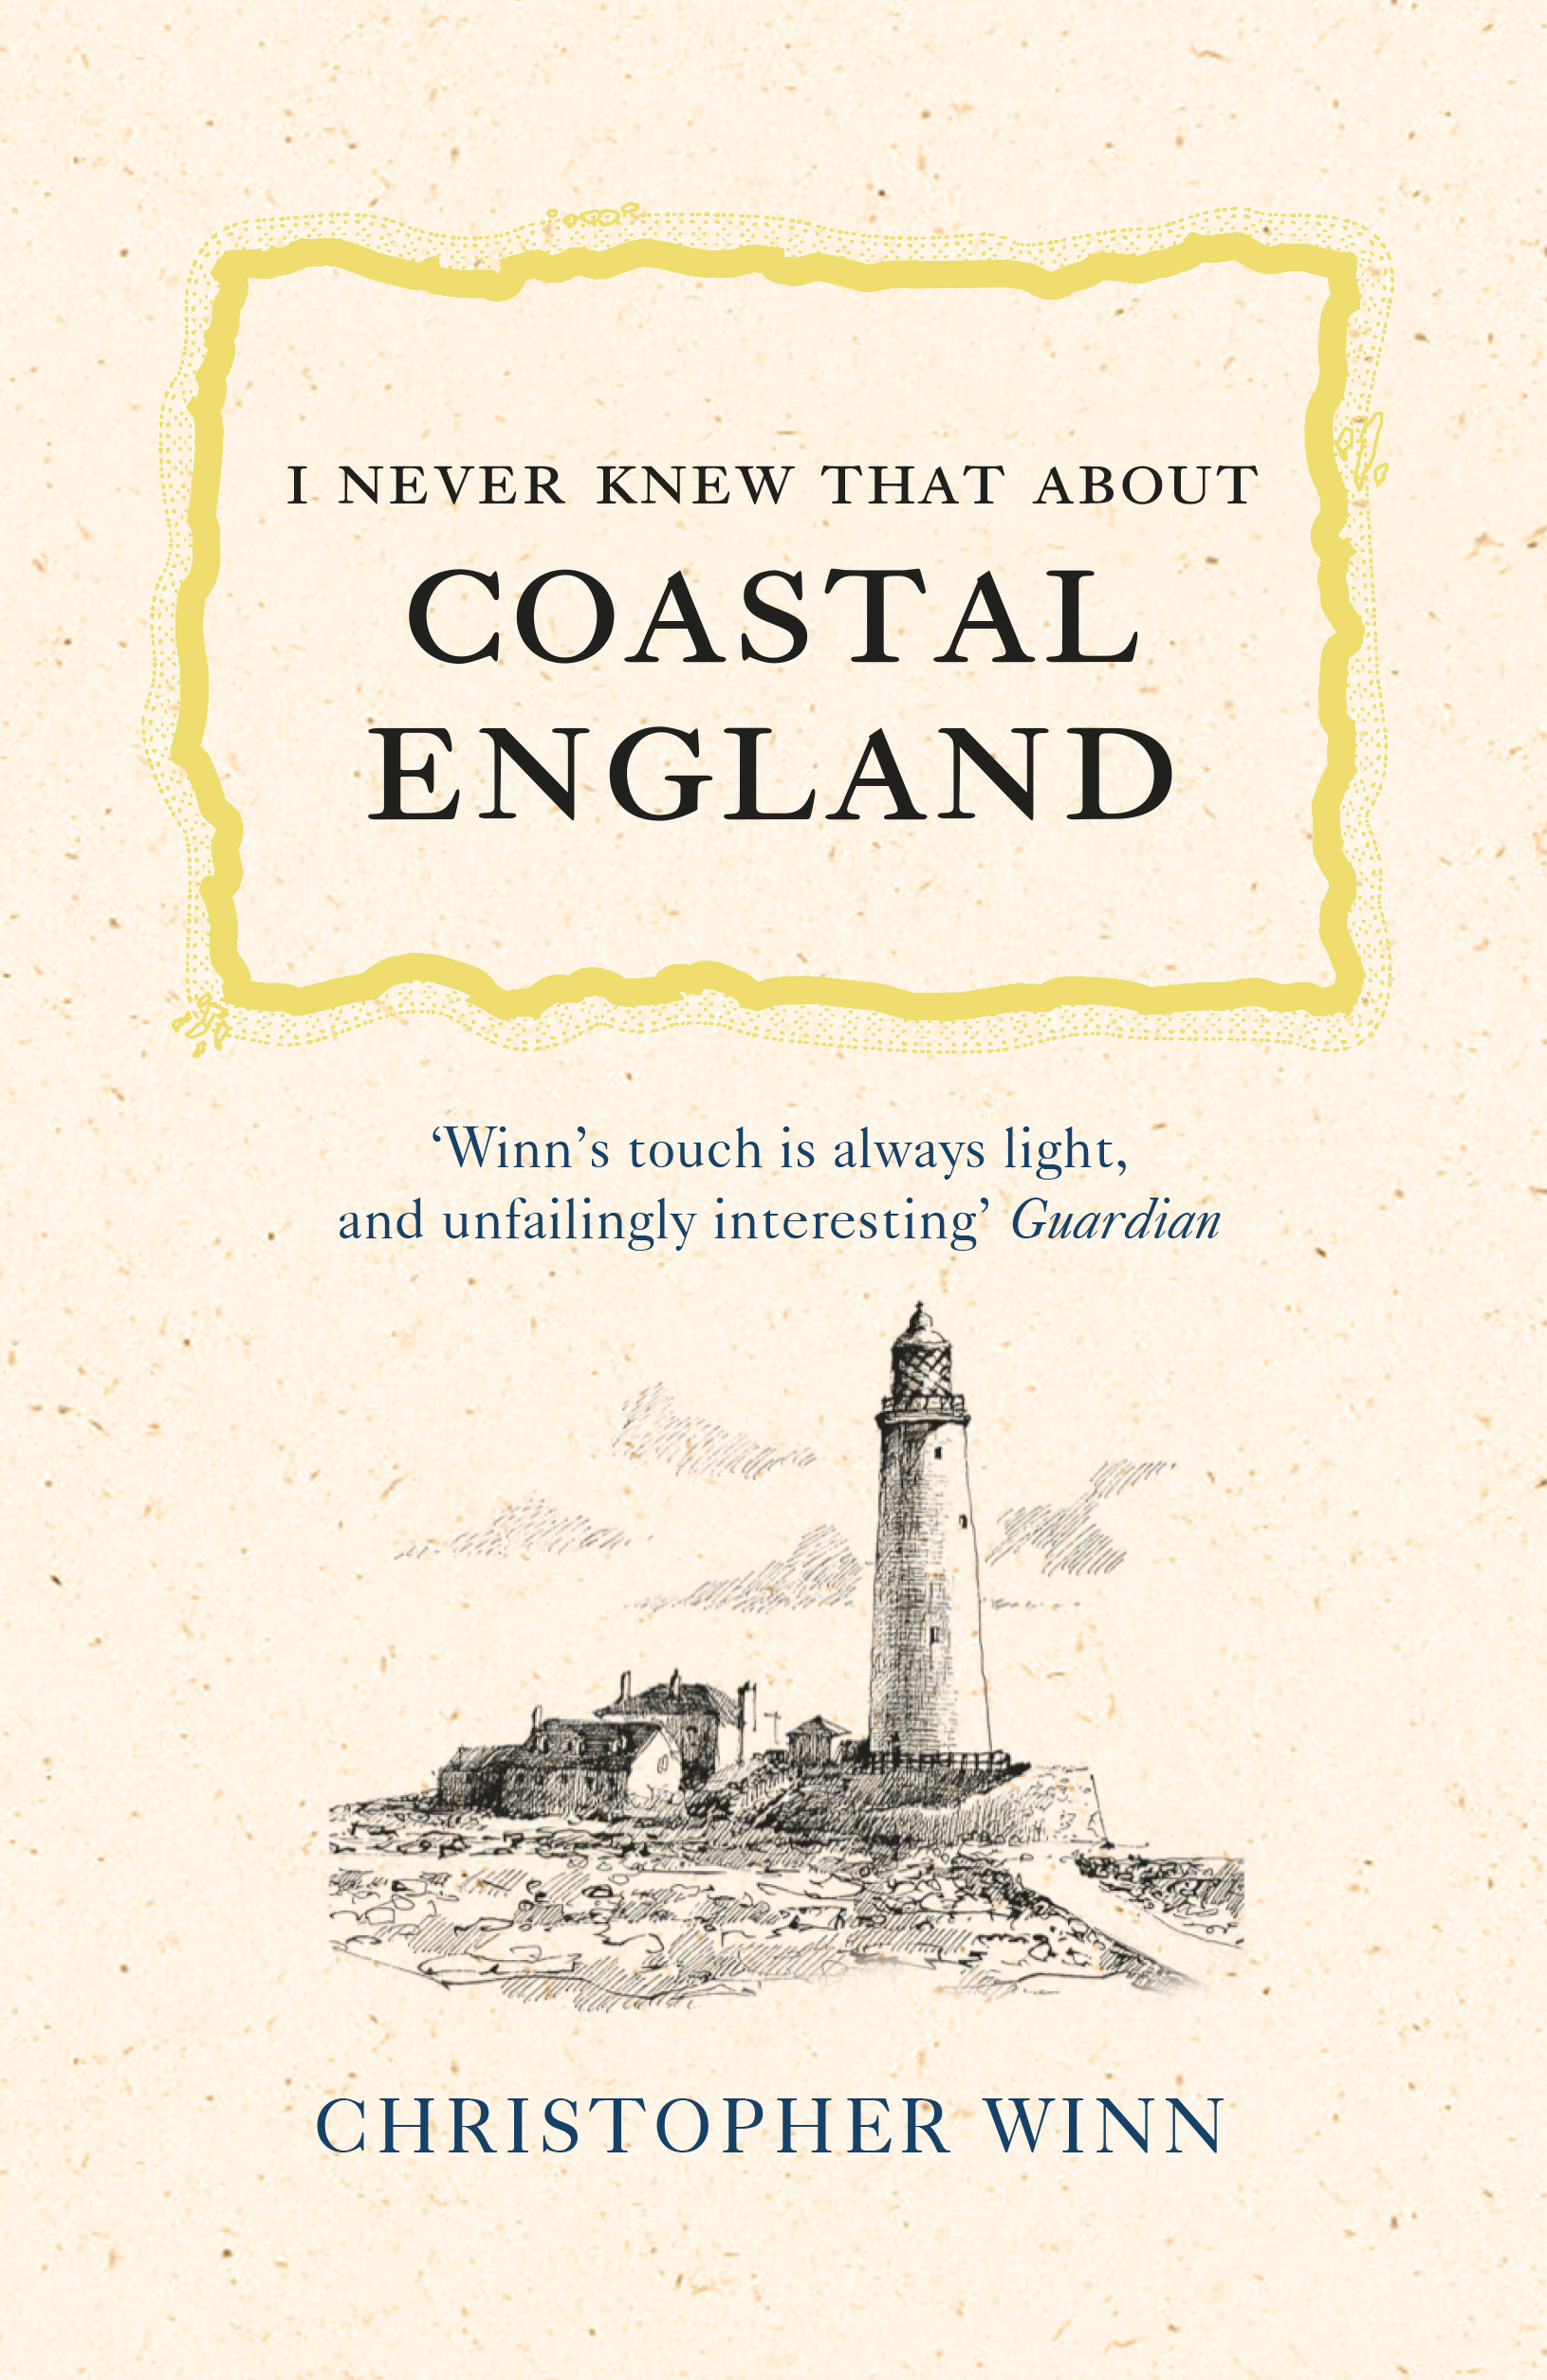 I Never Knew That About Coastal England with Christopher Winn